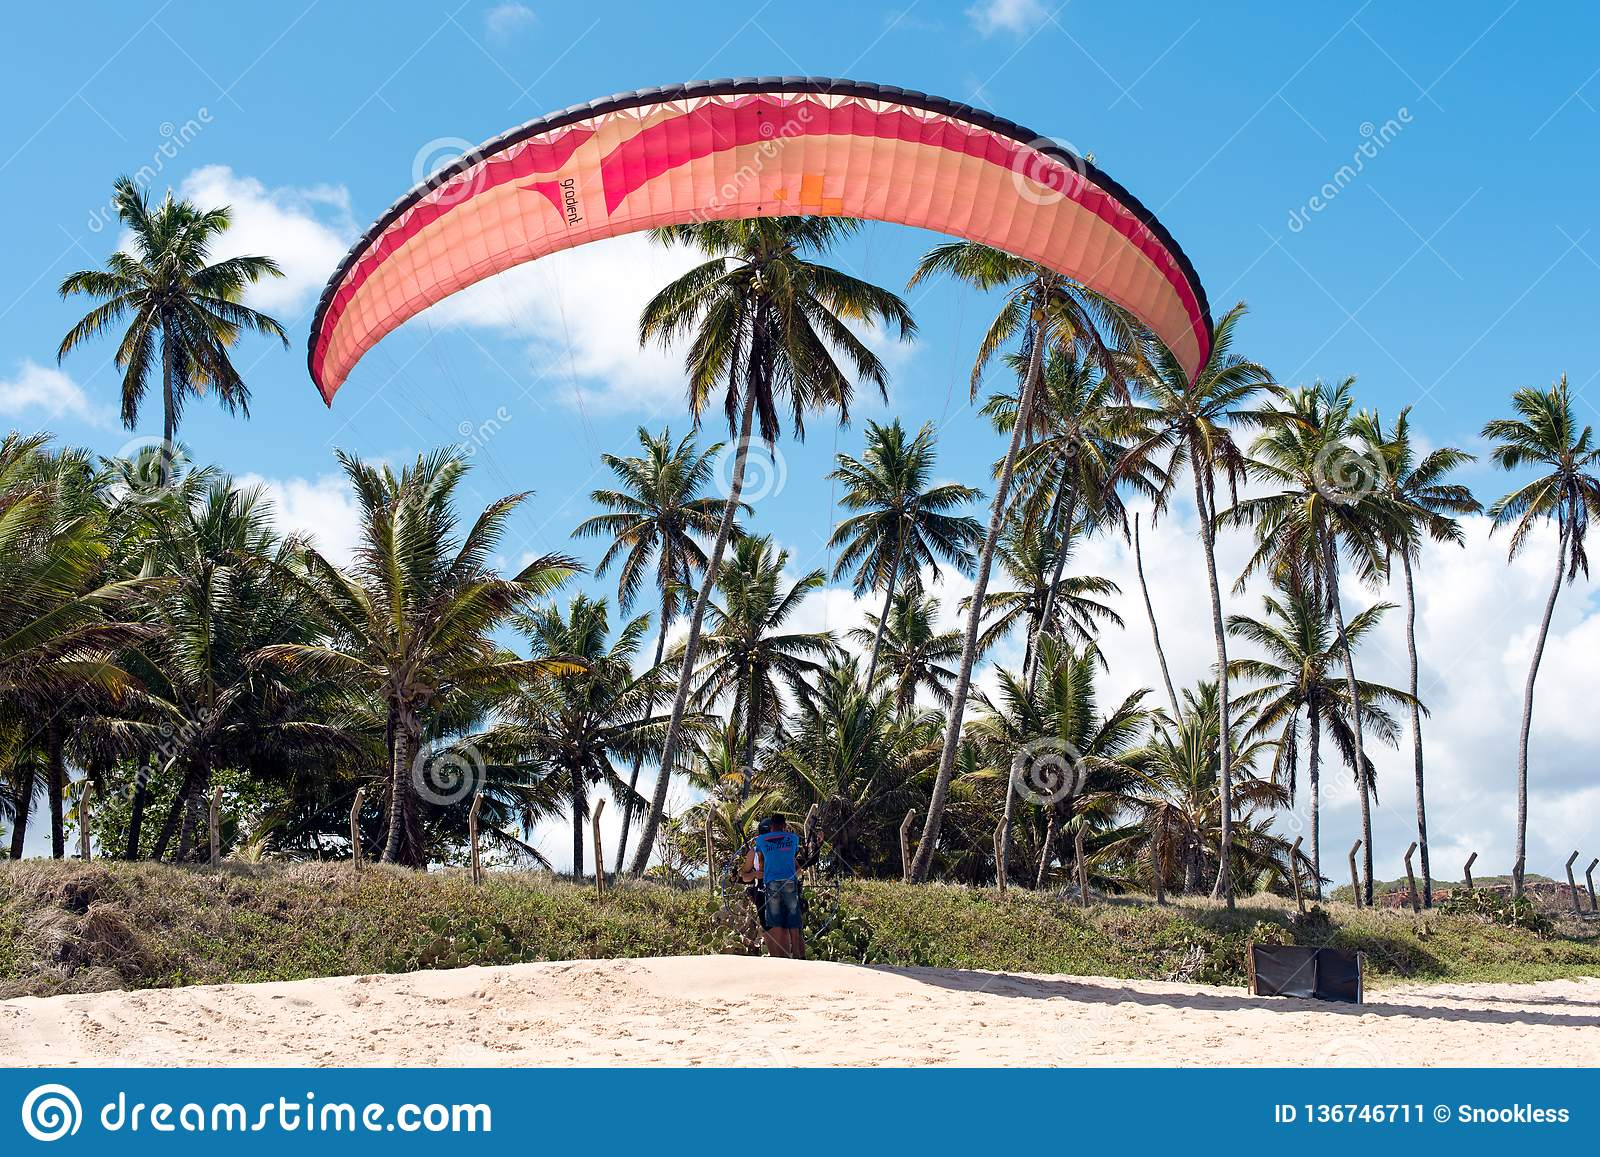 Getting ready to Paraglide